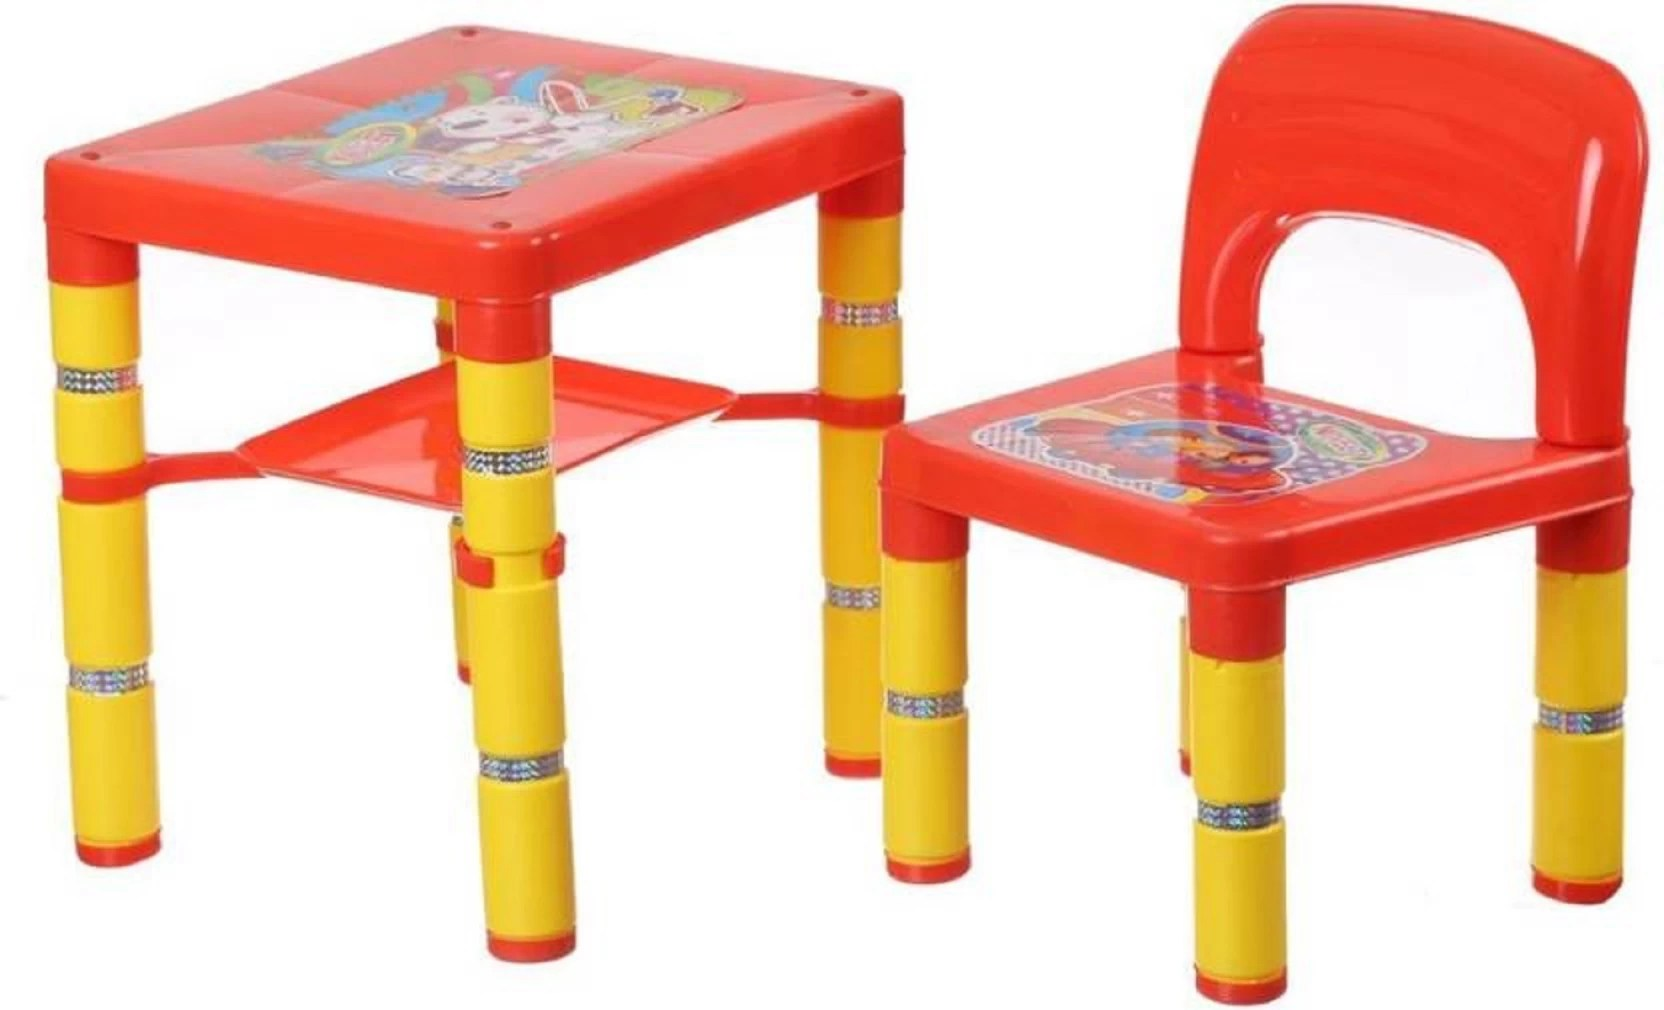 Boys Chair Nici Portable Table Chair Self Assembly Set For Every Growing